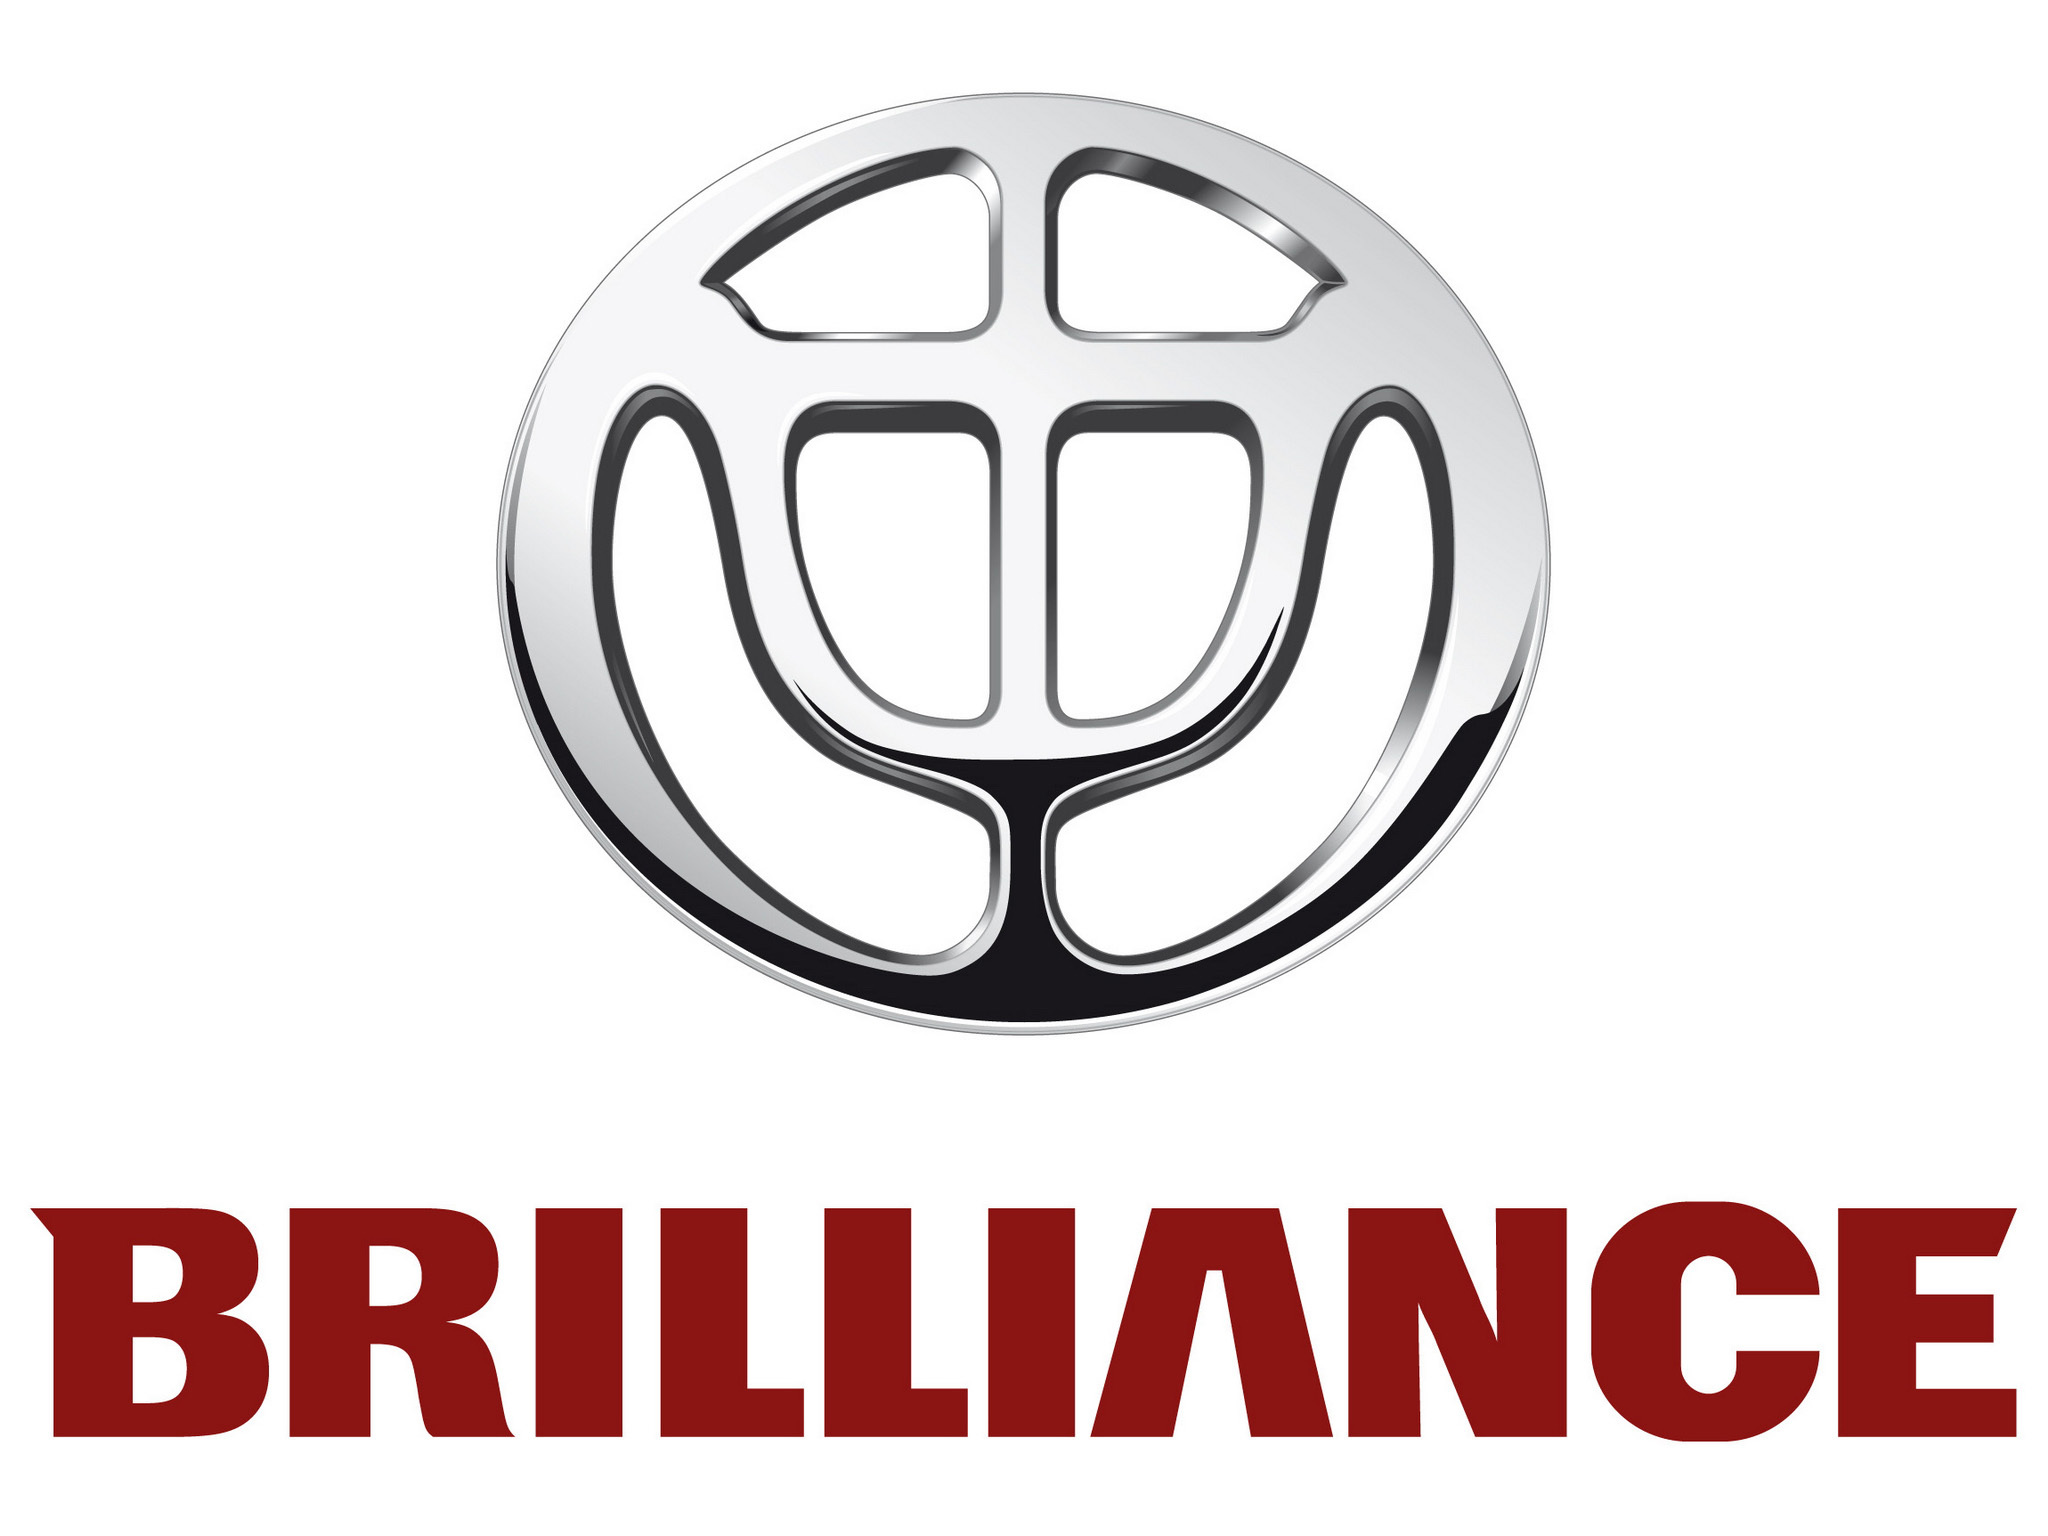 цена на Фильтра Brilliance V5 для Brilliance V5 2011 -